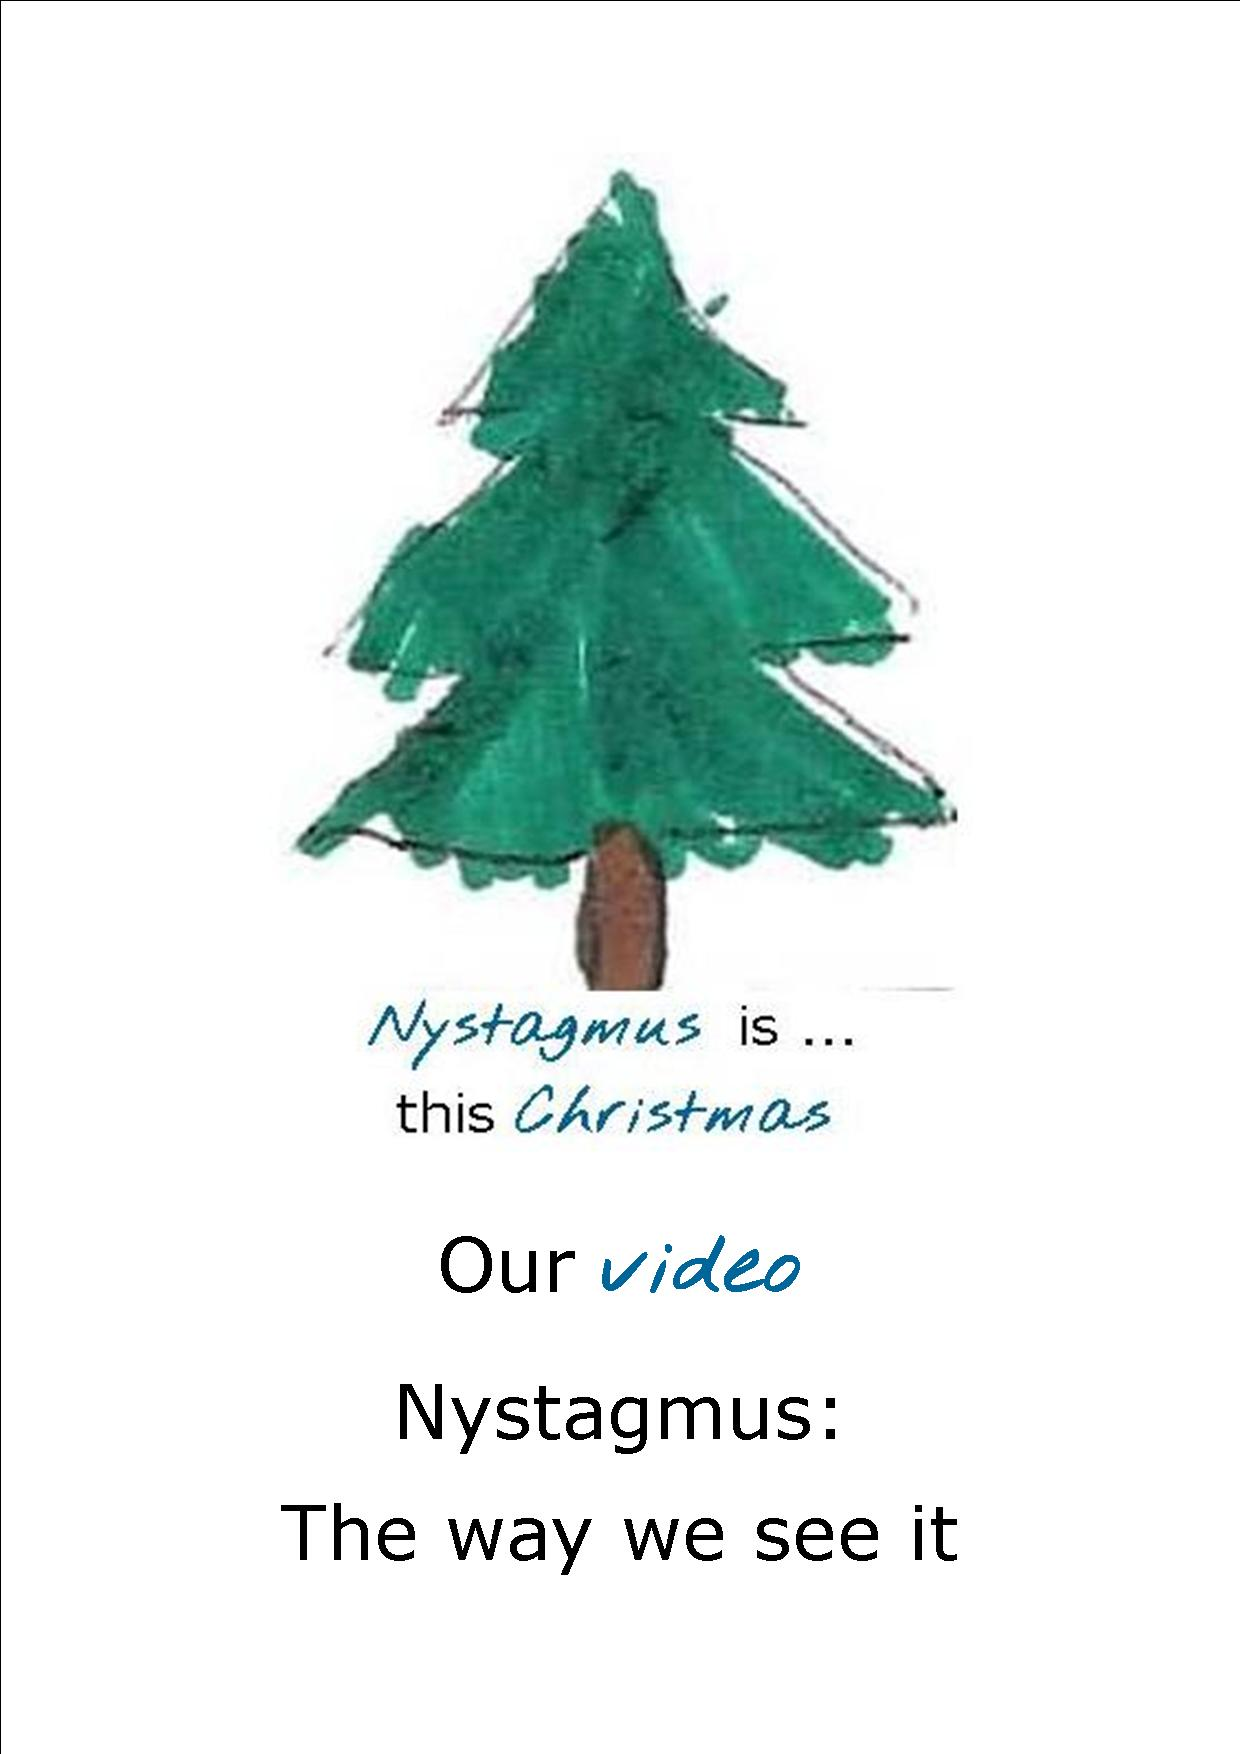 Nystagmus, the way we see it